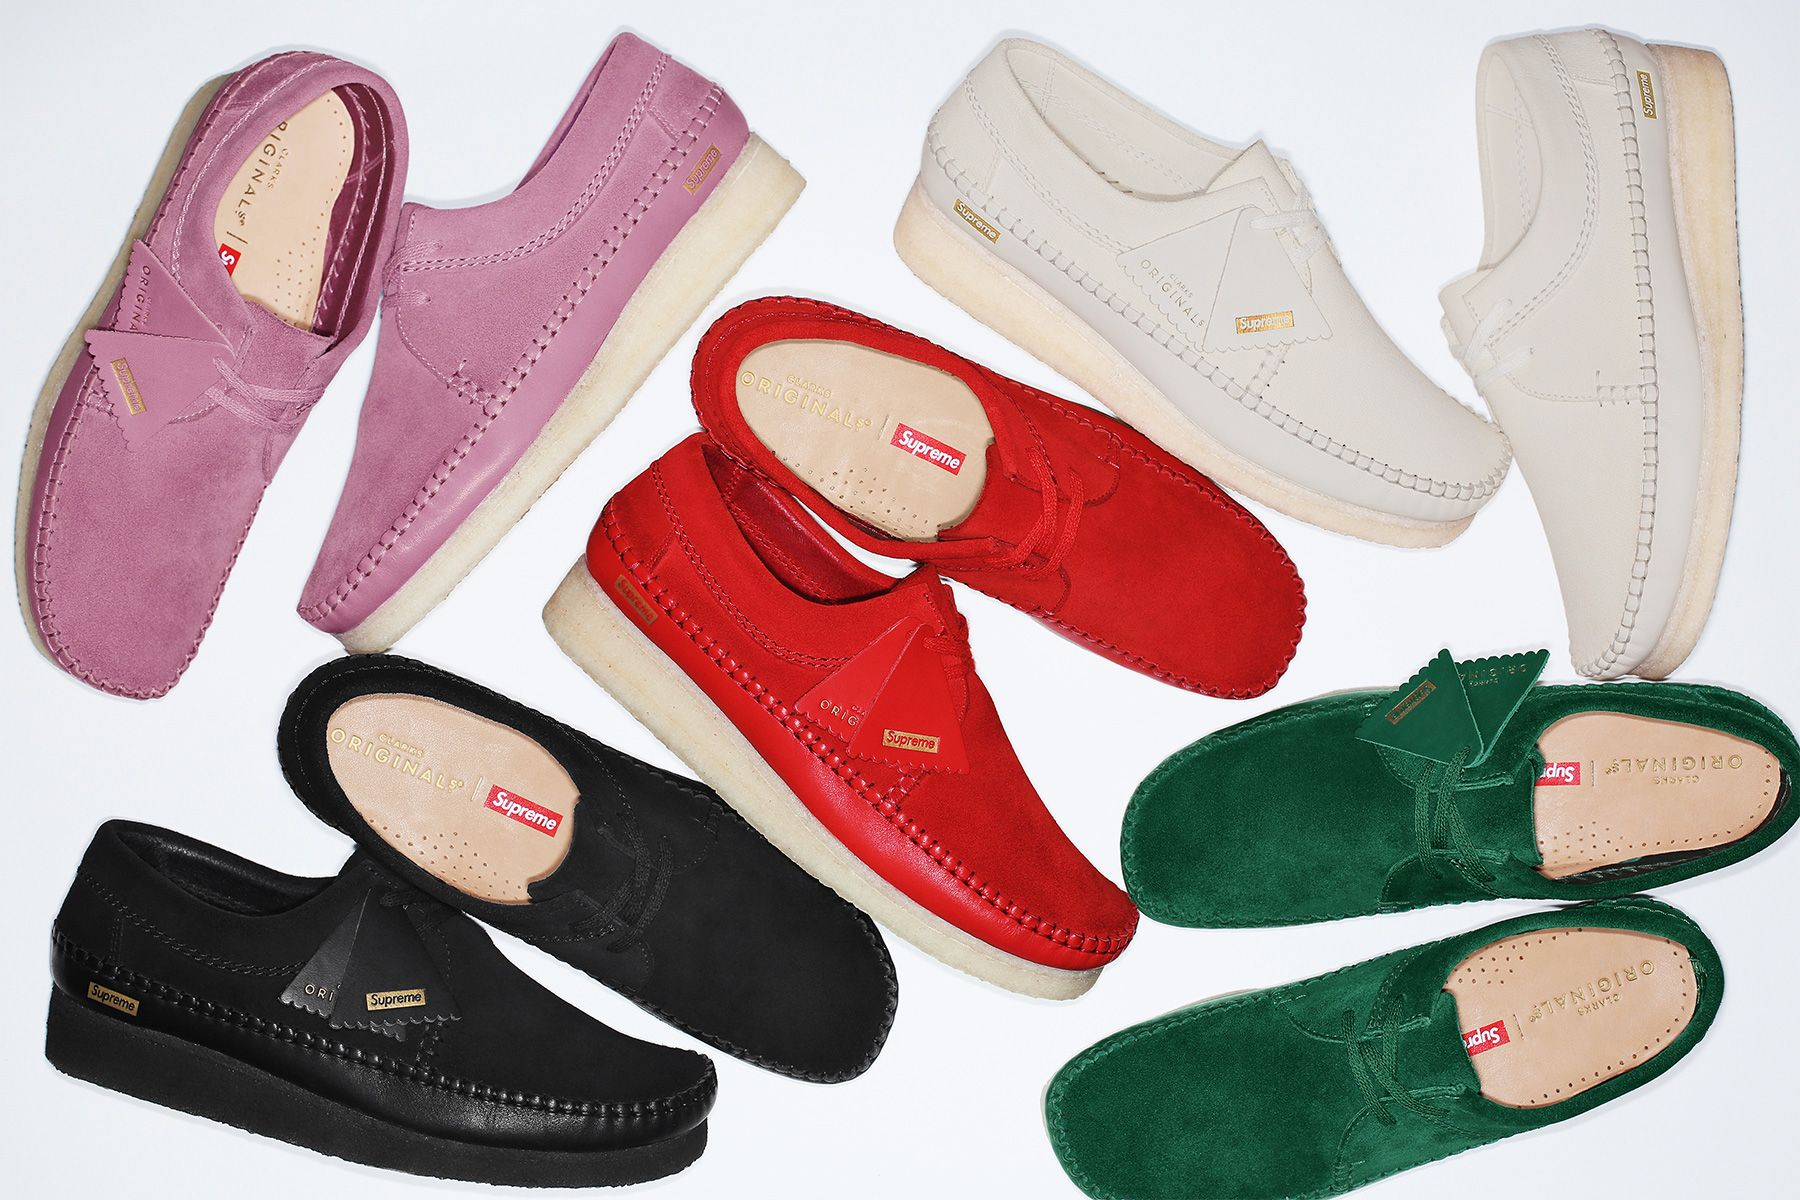 01e57b89be242 Supreme x Clarks Originals Weaver Collection Footwear Shoes Classic Made in UK  Leather New York Supreme Crepe Suede